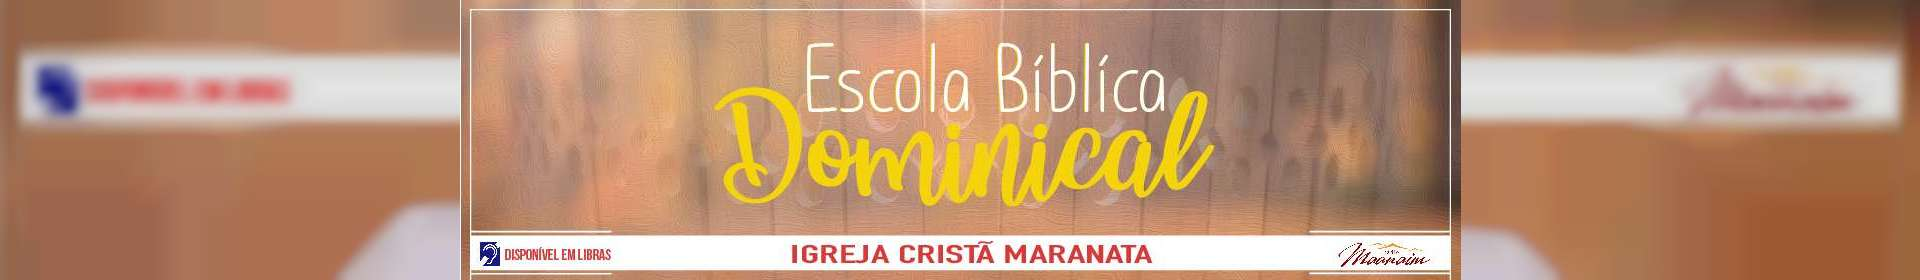 Escola Bíblica Dominical - 21/04/2019